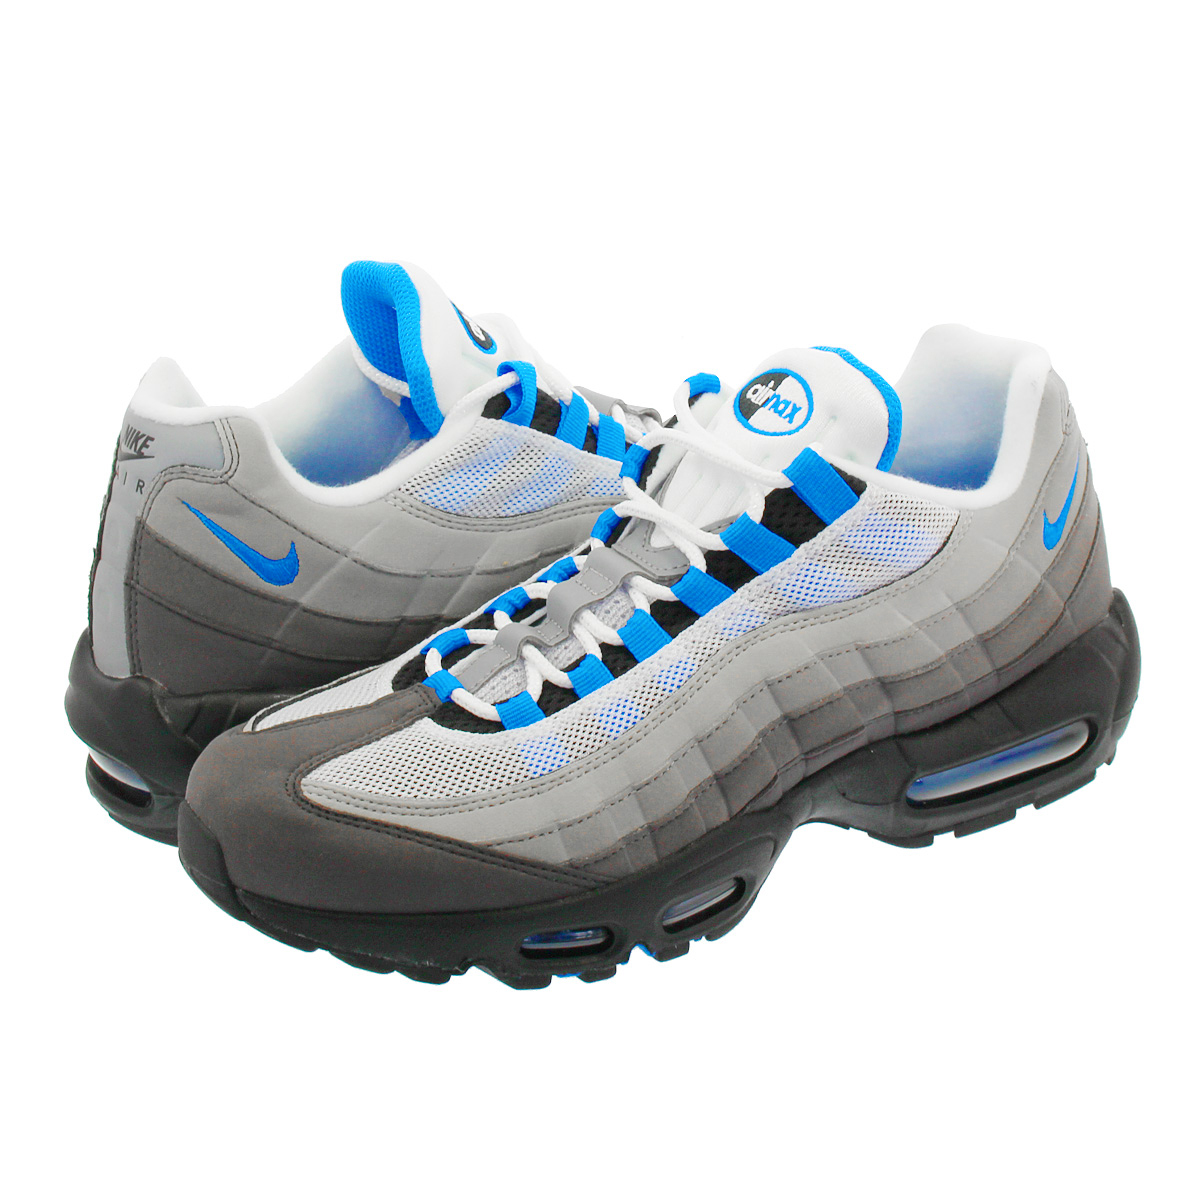 aa8cb436c1 Categories. « All Categories · Shoes · Men's Shoes · Sneakers · NIKE AIR  MAX 95 Kie Ney AMAX 95 WHITE/CRYSTAL BLUE at8696-100